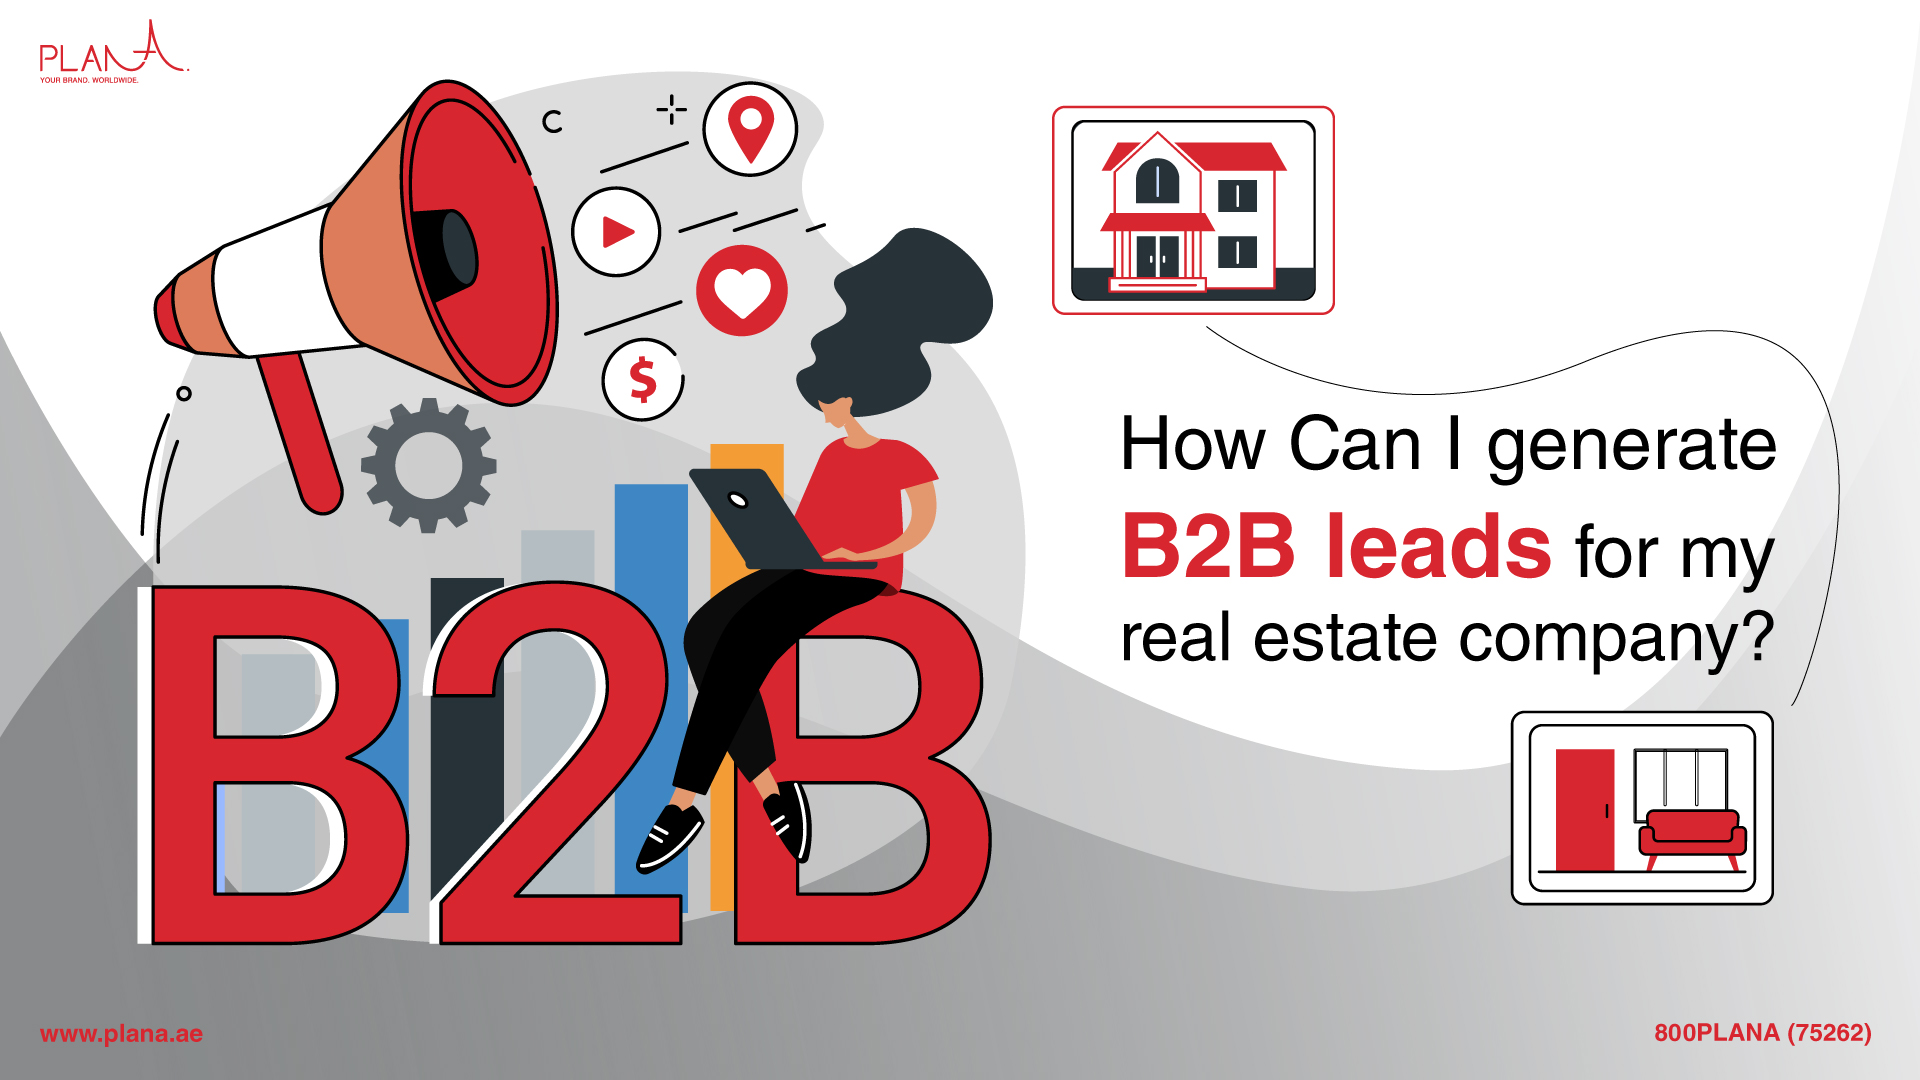 How Can I generate B2B leads for my real estate company?